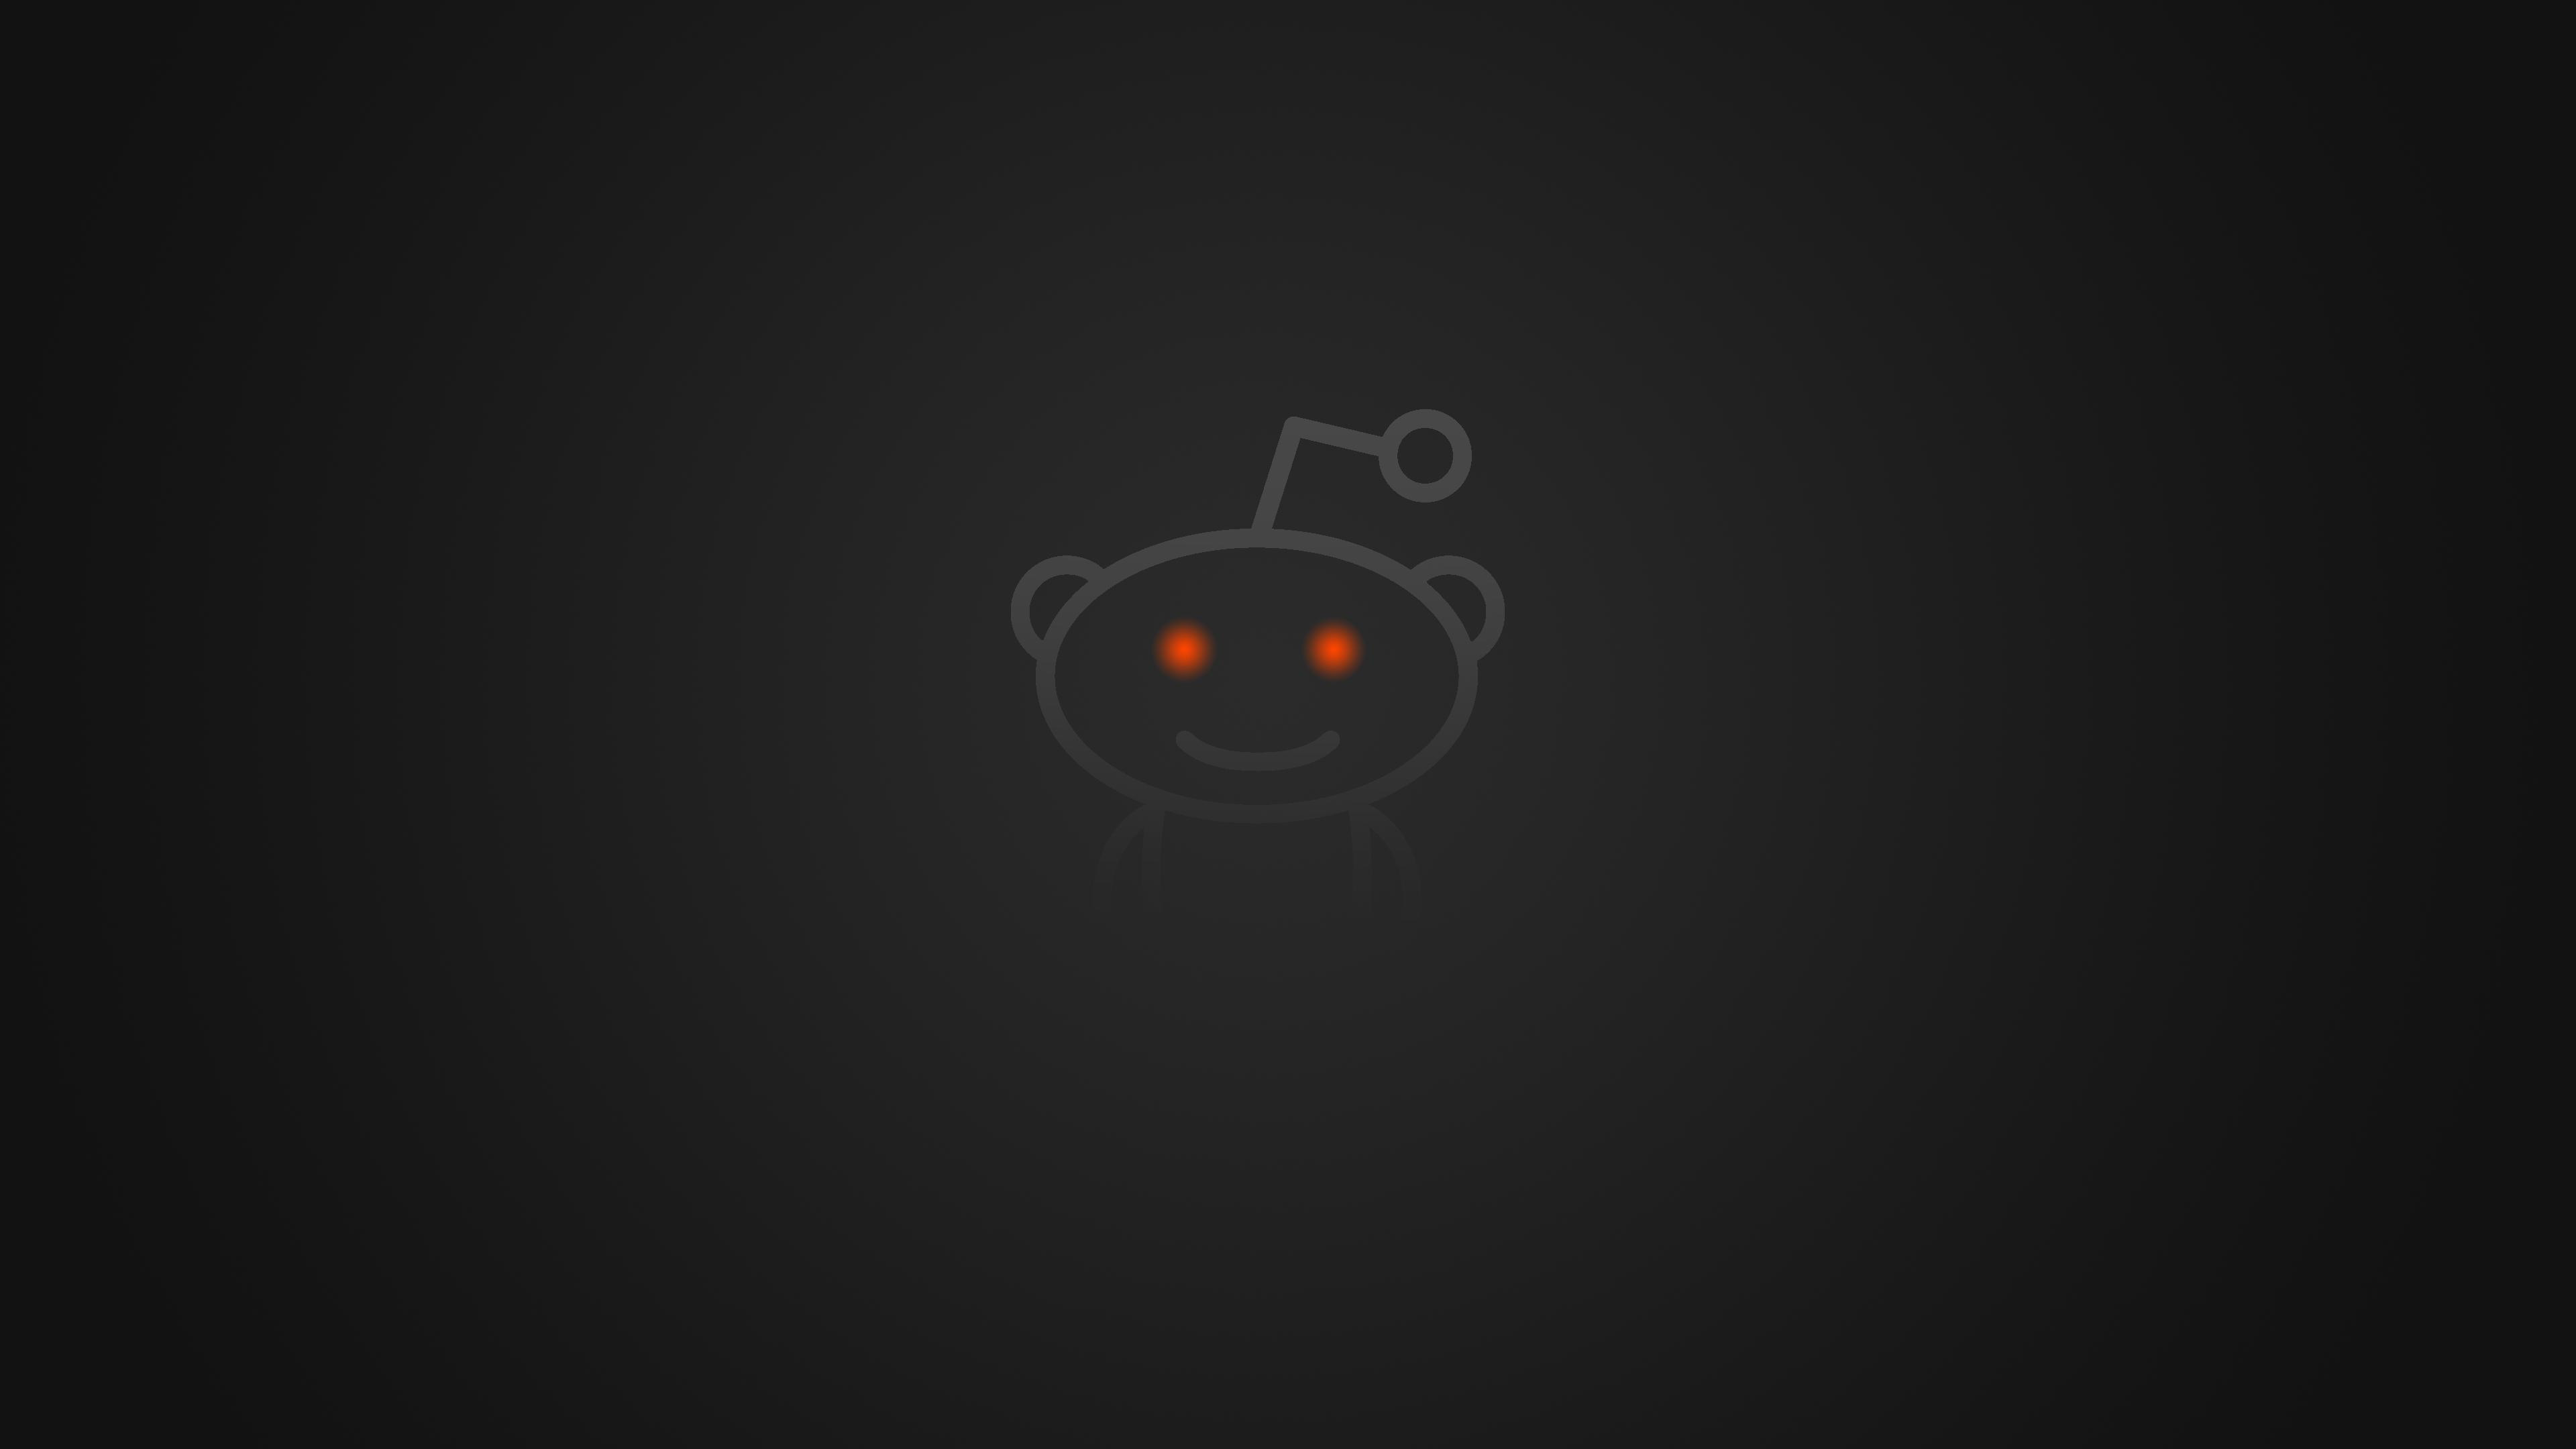 Minimalistic Reddit Background [OC] [3840x2160]] : WQHD_Wallpaper